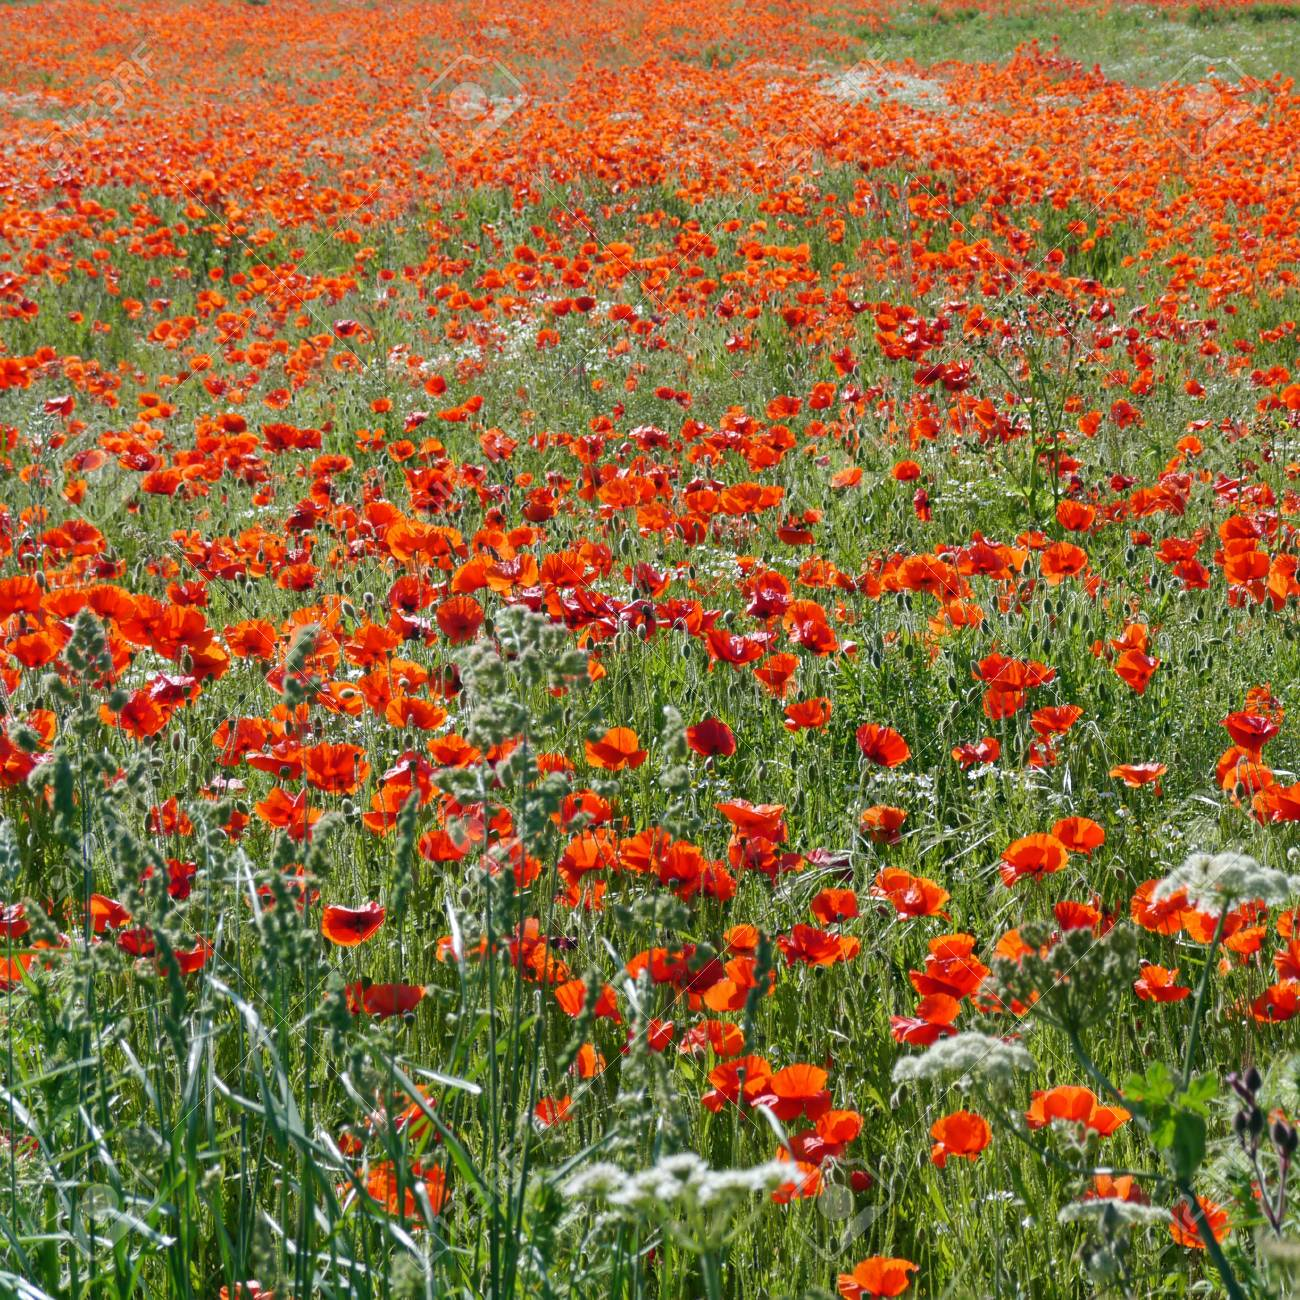 A meadow full of poppies and grasses in rural English countryside Standard-Bild - 81788065